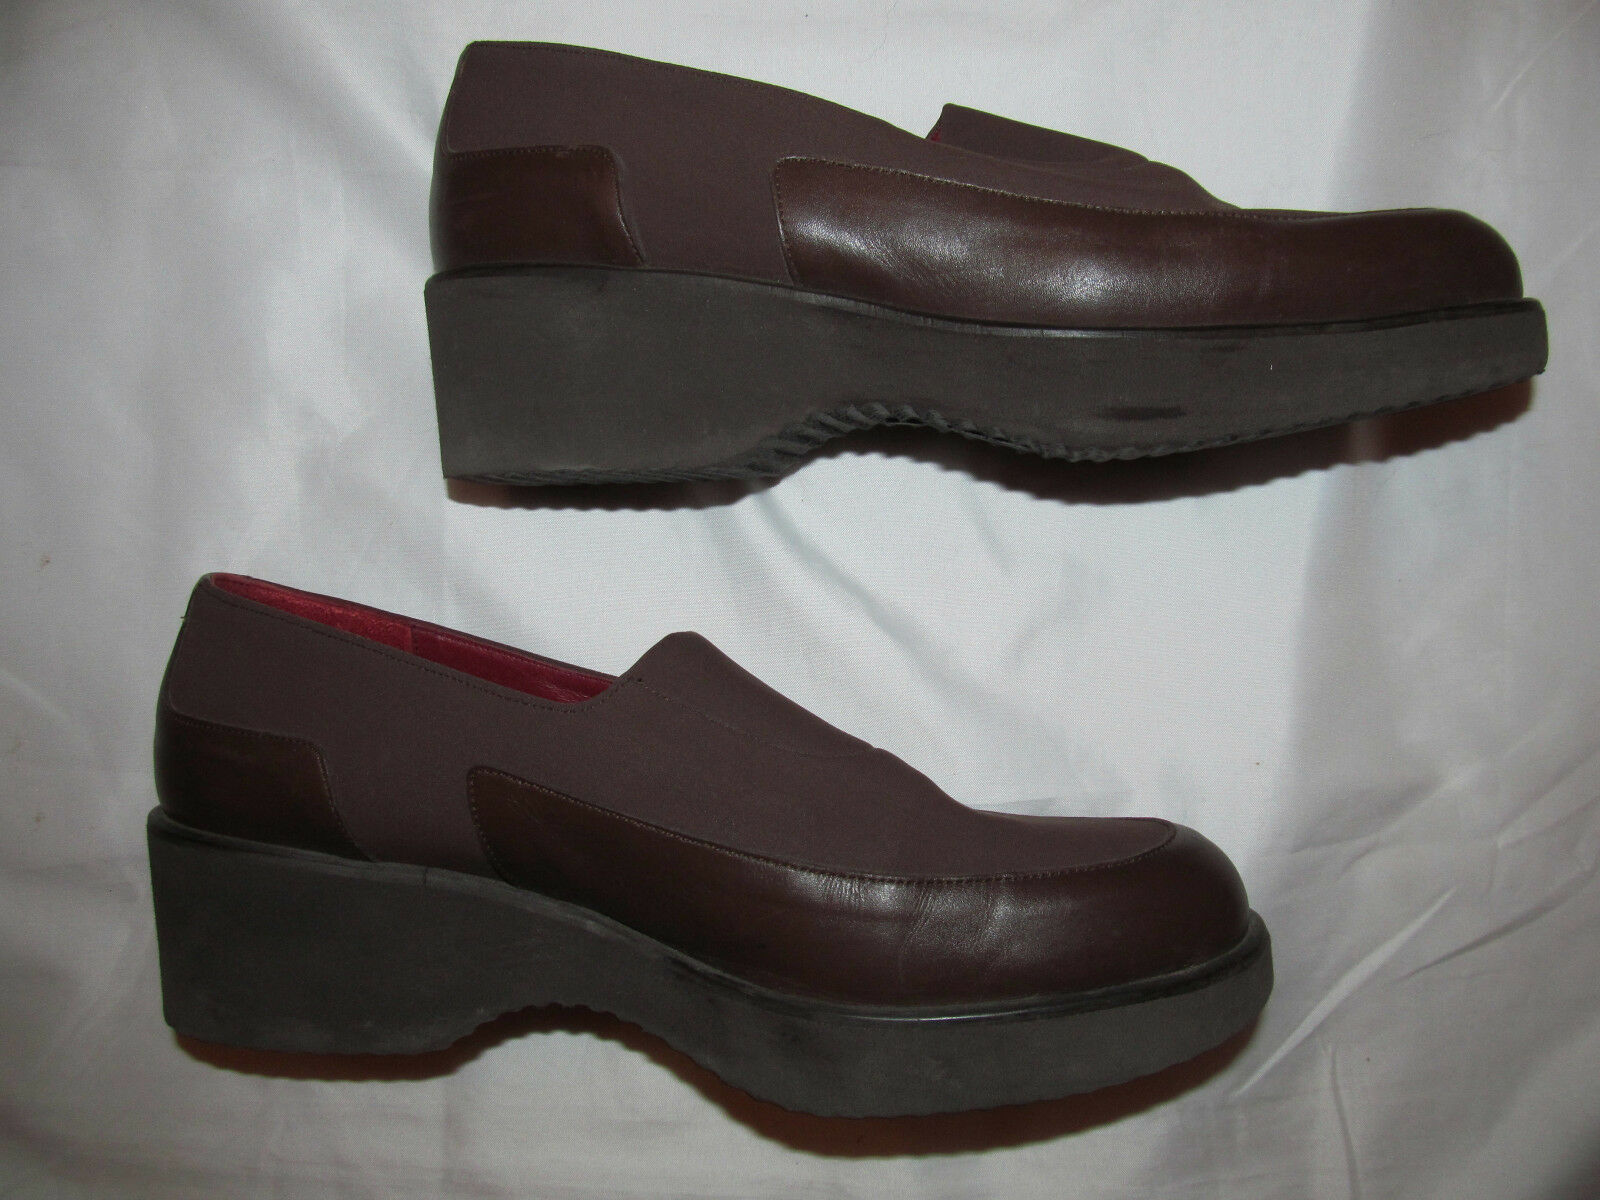 DONALD J PLINER CHELE microfiber nylon and and and  leather wedge loafers shoes 7.5 M 2ab77e